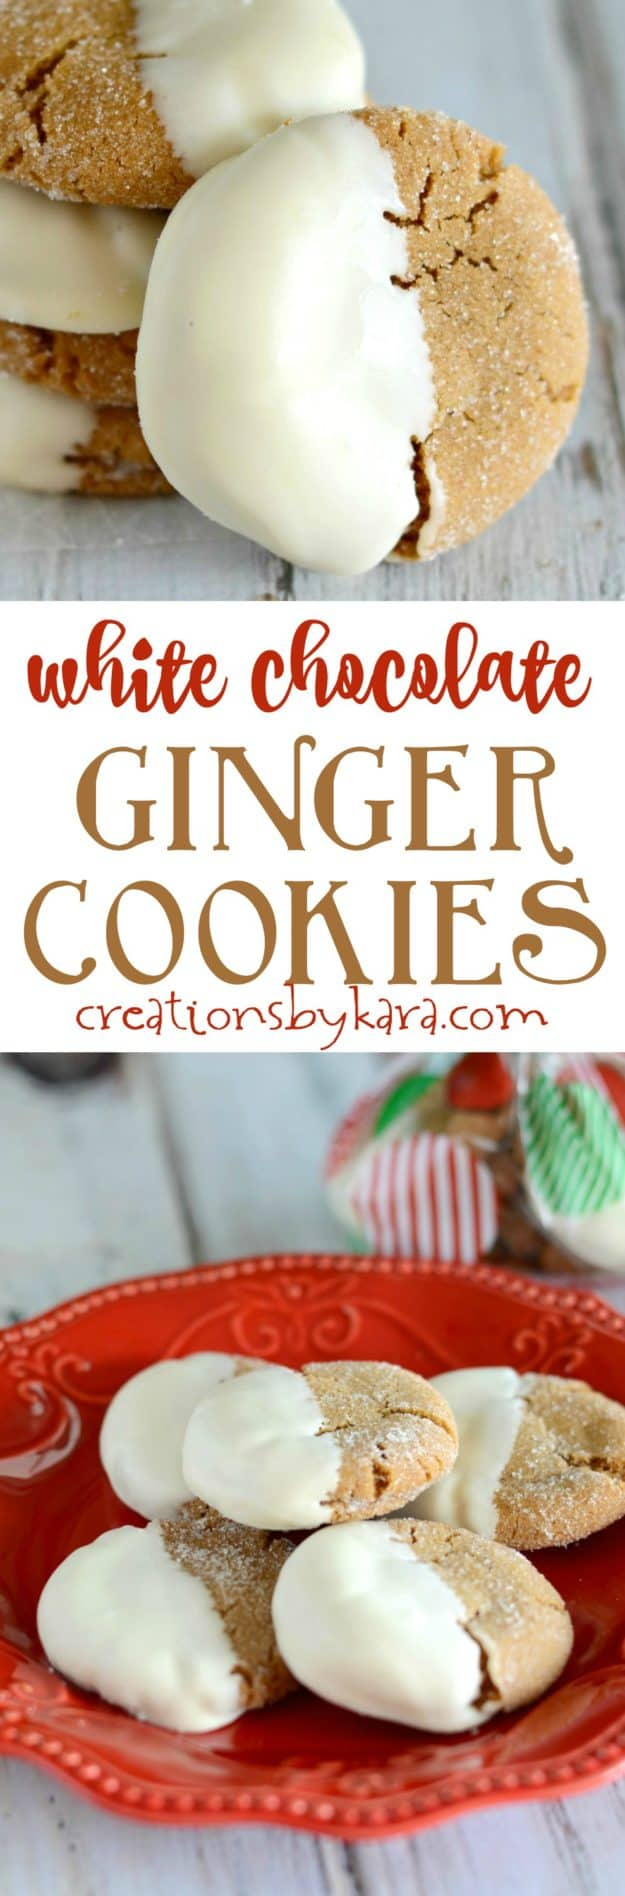 Recipe for the best ginger cookies dipped in white chocolate. Soft, chewy, spicy, and yummy. A perfect Christmas cookie recipe. I always receive recipe requests for these ginger cookies!